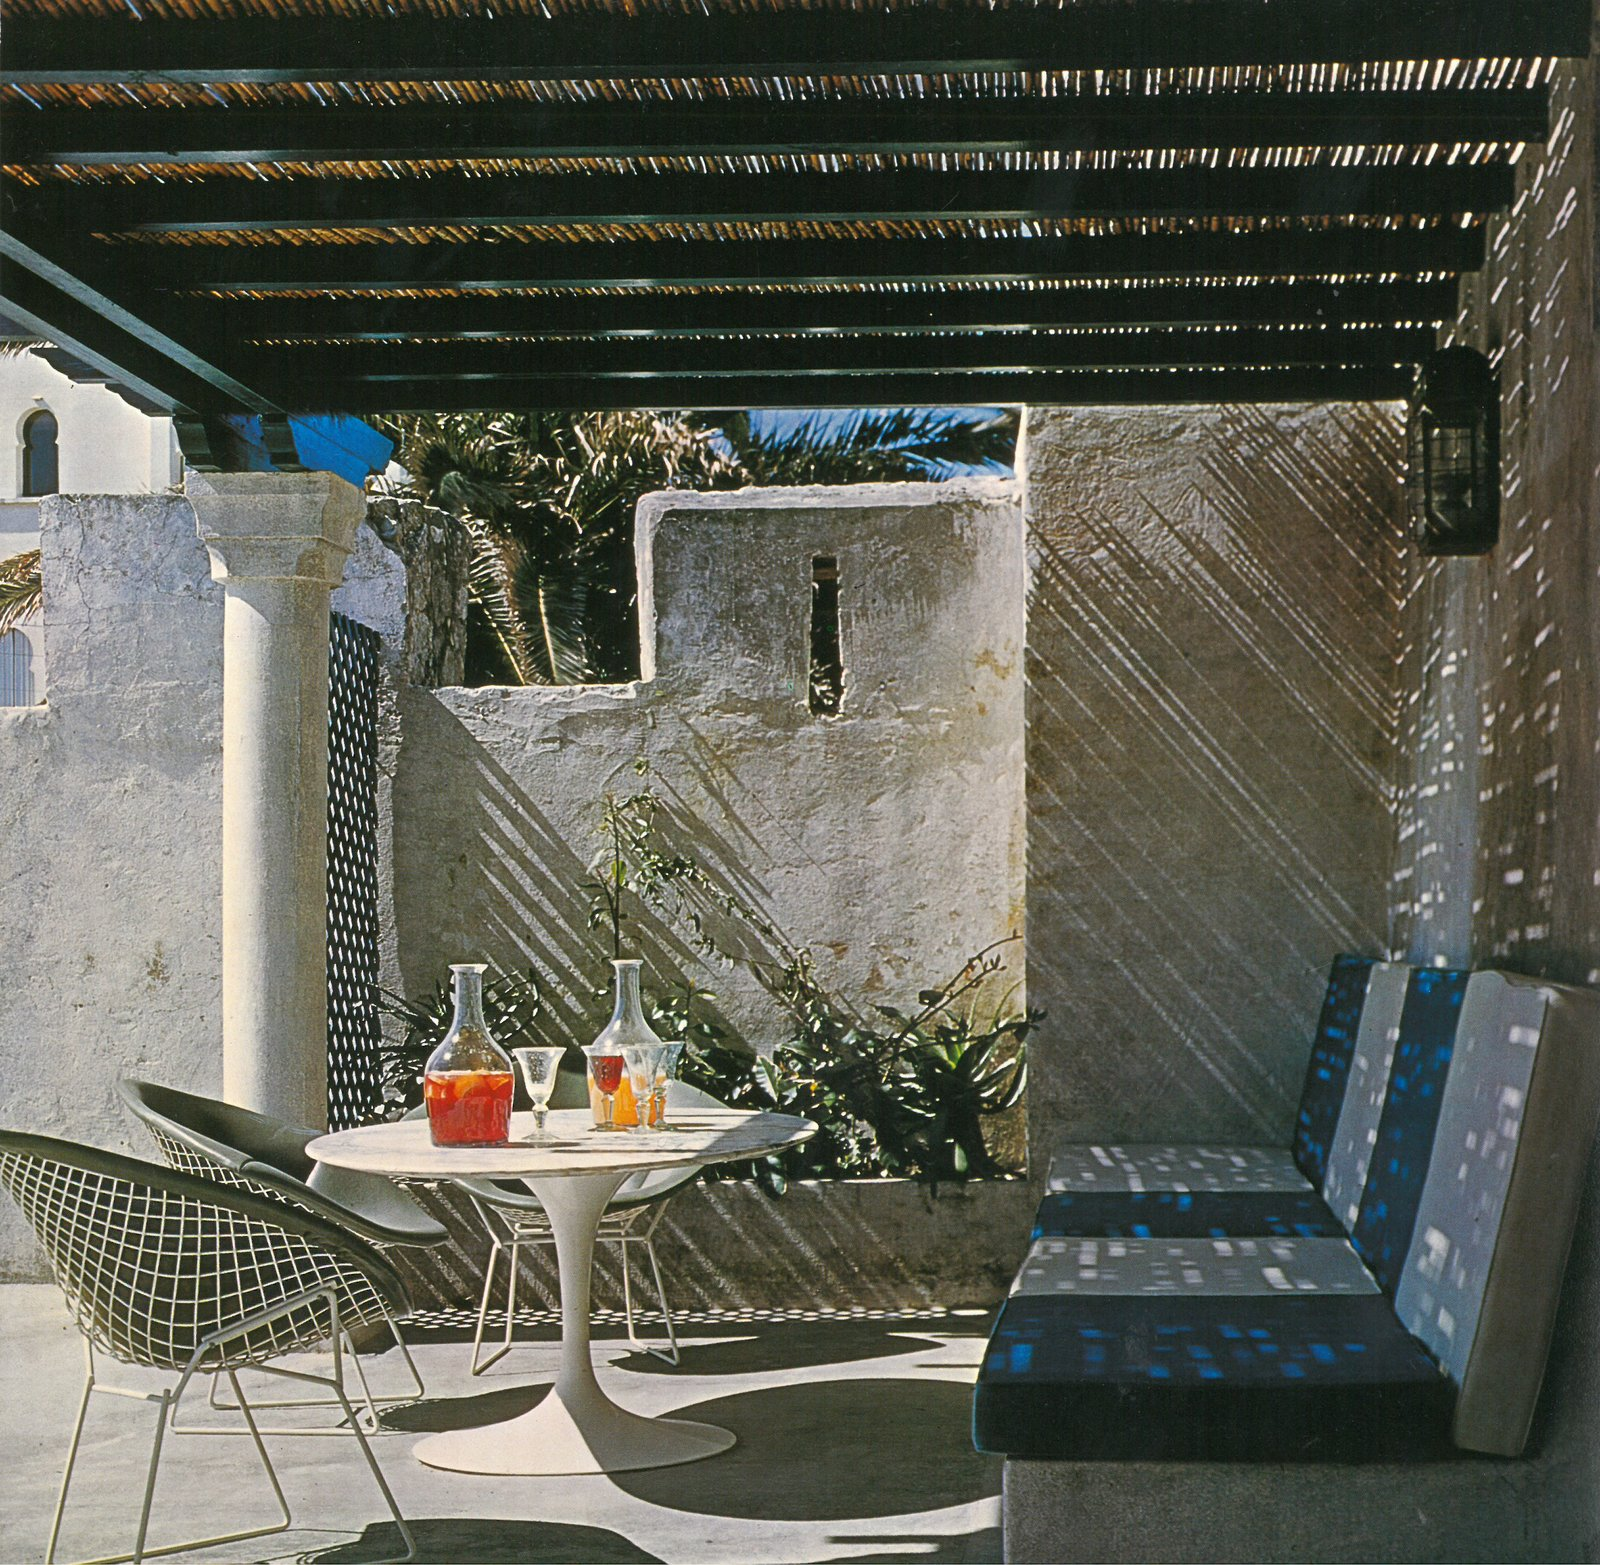 Outdoor, Small Patio, Porch, Deck, and Concrete Patio, Porch, Deck Yves Vidal's York Castle in Tangiers, Morocco. Photograph from the Knoll Archive.  Photo 7 of 9 in Yves Vidal: Knoll International